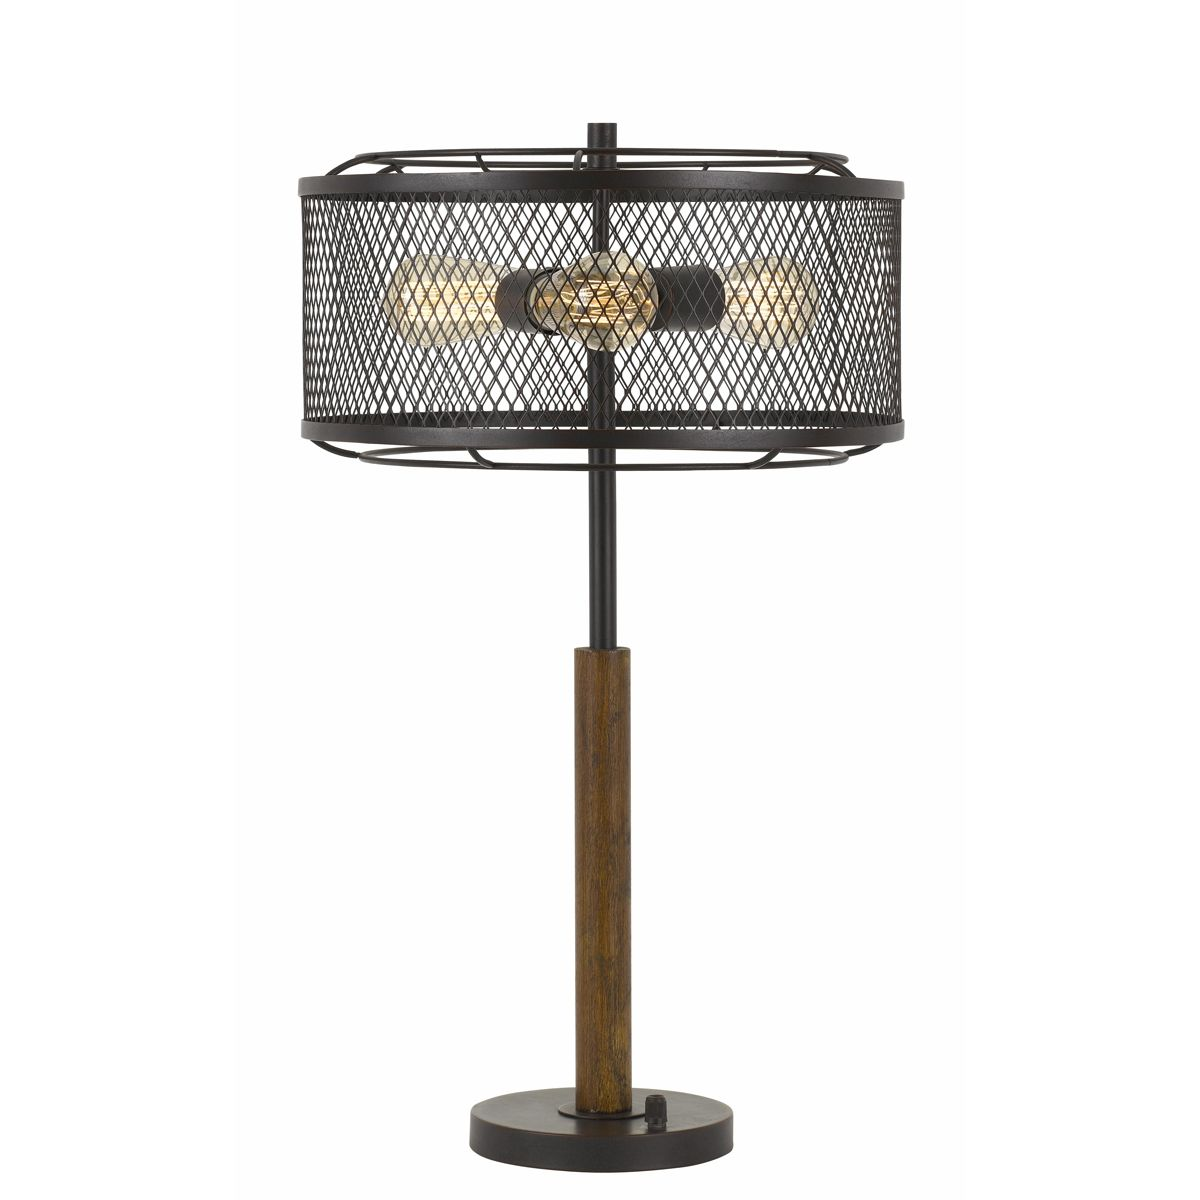 cal lighting casual dawson light table lamp dark accent height wood bronze finish living room furniture for small spaces granite top end tables yellow retro sofa dining ideas gold